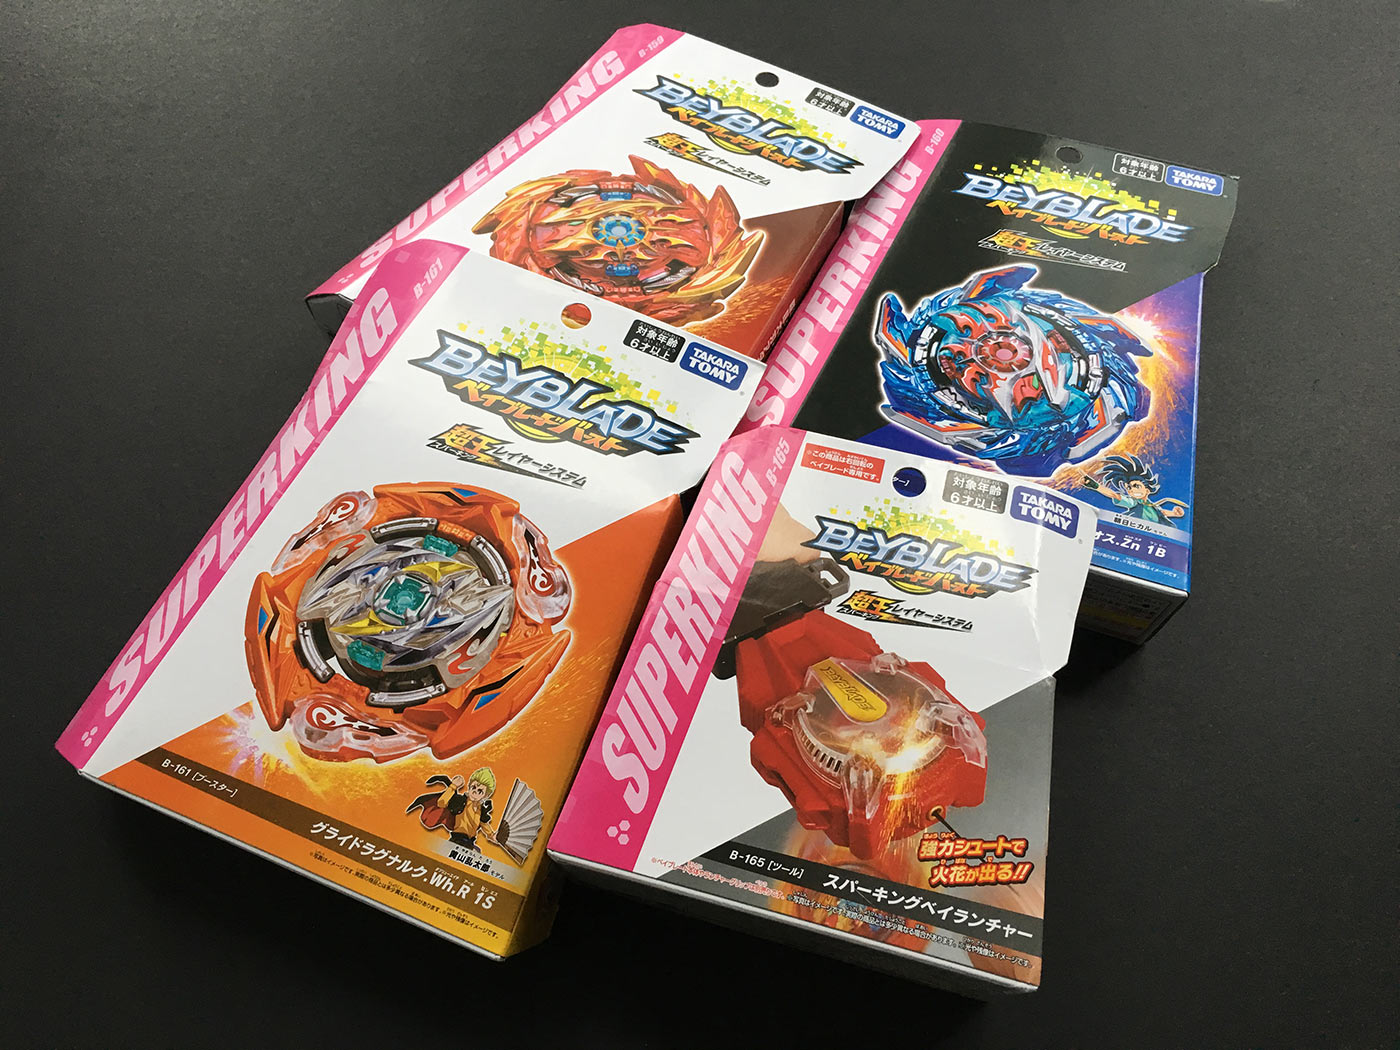 Beyblade Burst Sparking Super Hyperion King Helios Glide Ragnaruk and Sparking Launcher